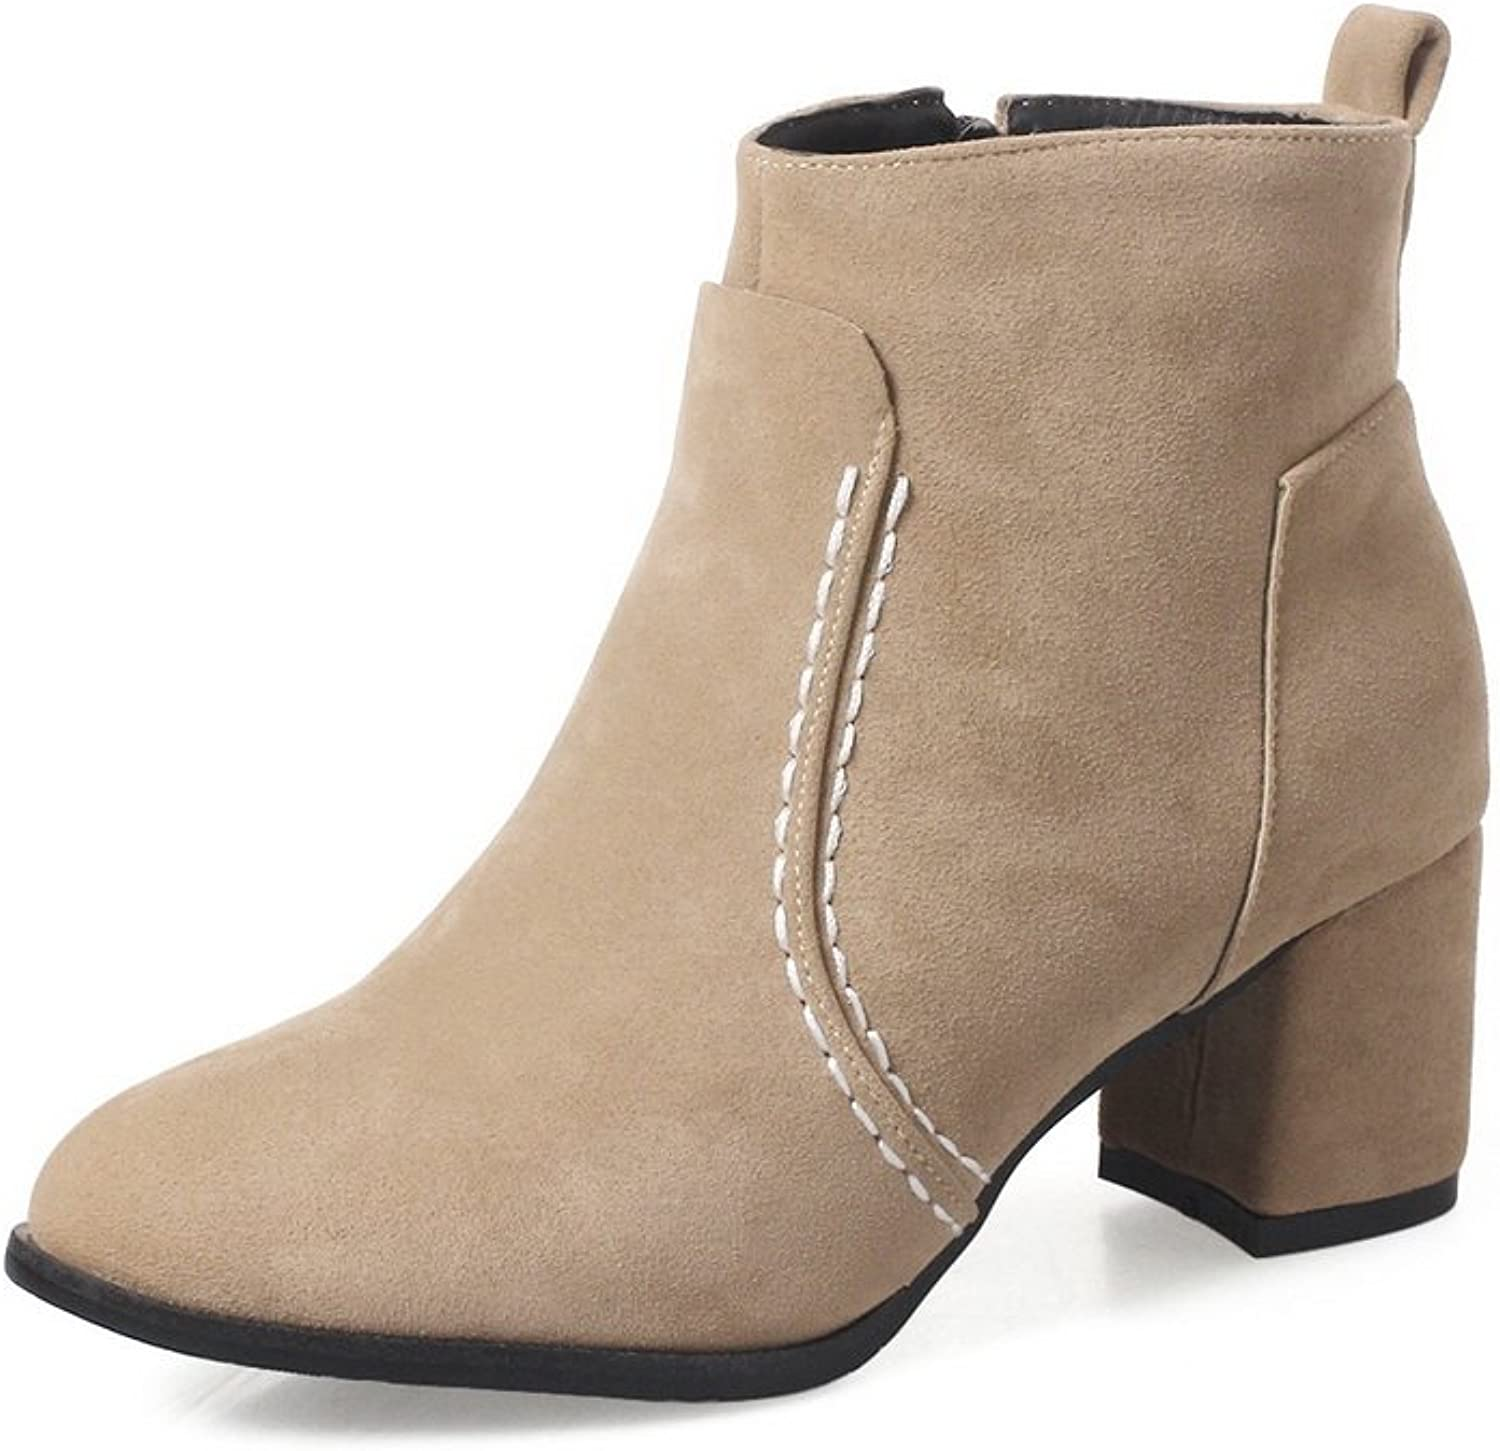 1TO9 Womens Boots Closed-Toe Zip Kitten-Heel Rubber Warm Lining Leather-And-Synthetic Dress Fur-Lined Urethane Boots MNS02471